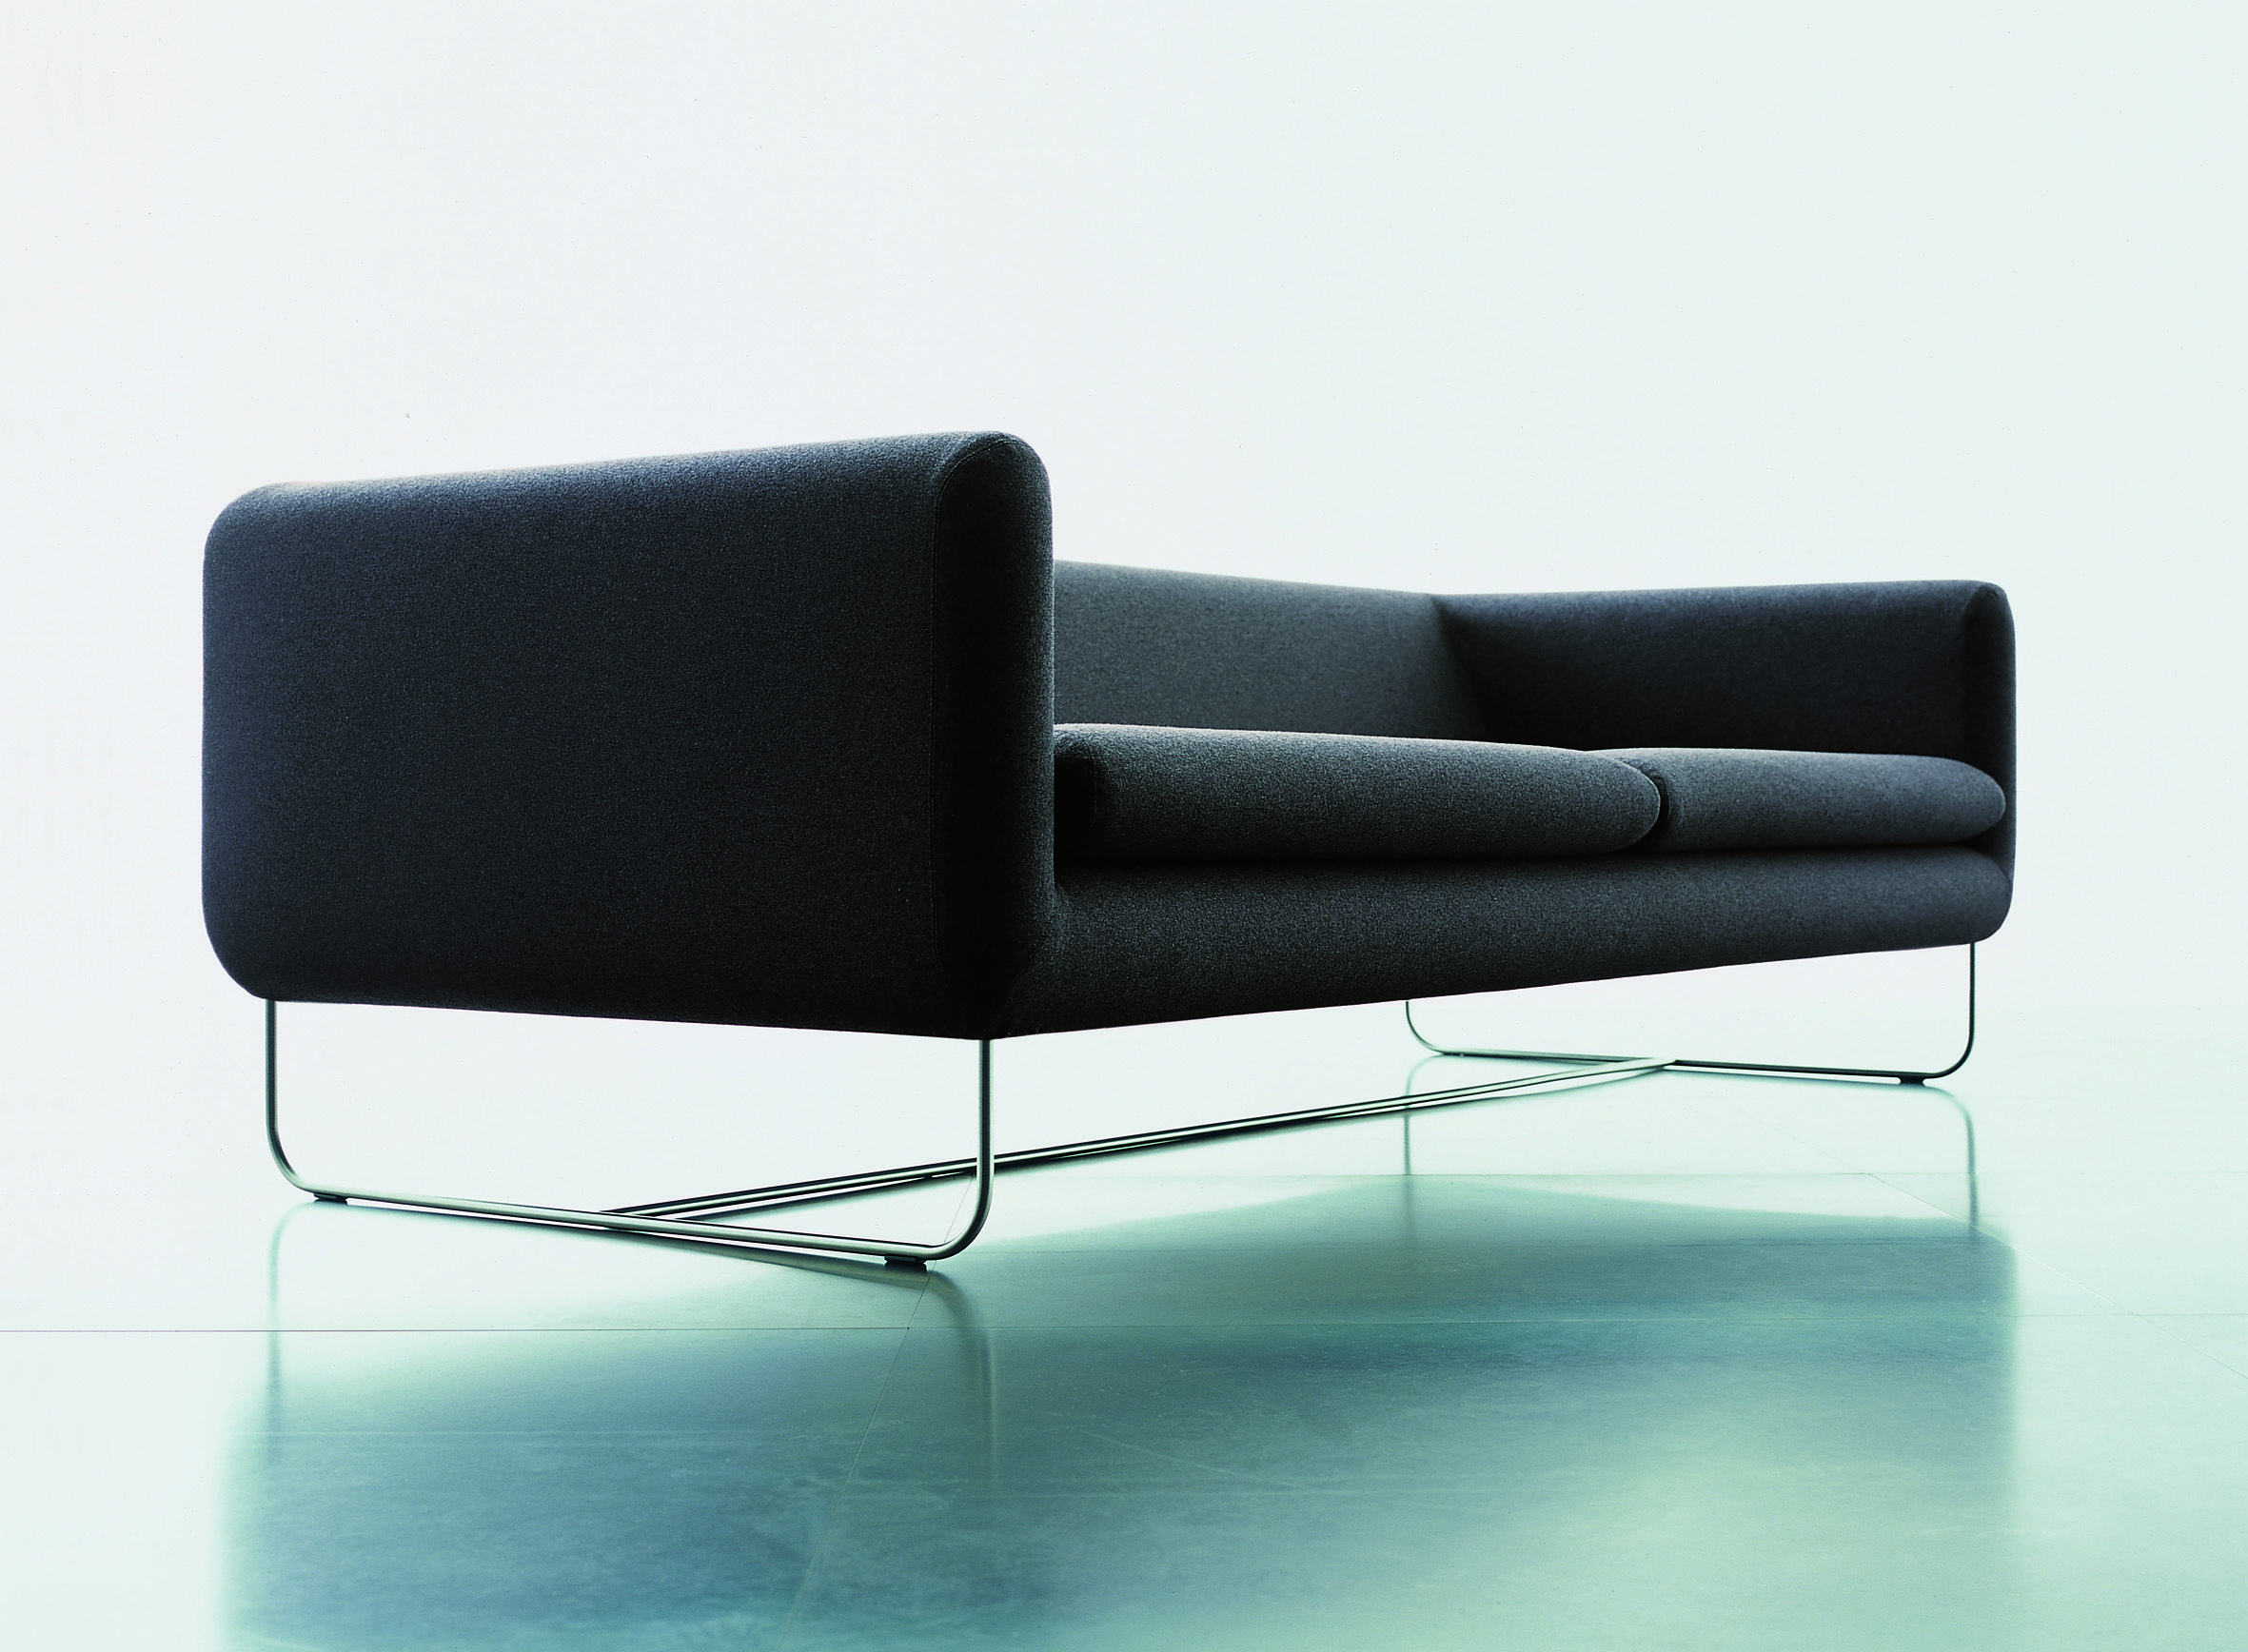 Living Divani Sofa Price Avalon Sofa By Claesson Koivisto Rune For Living Divani Living Divani